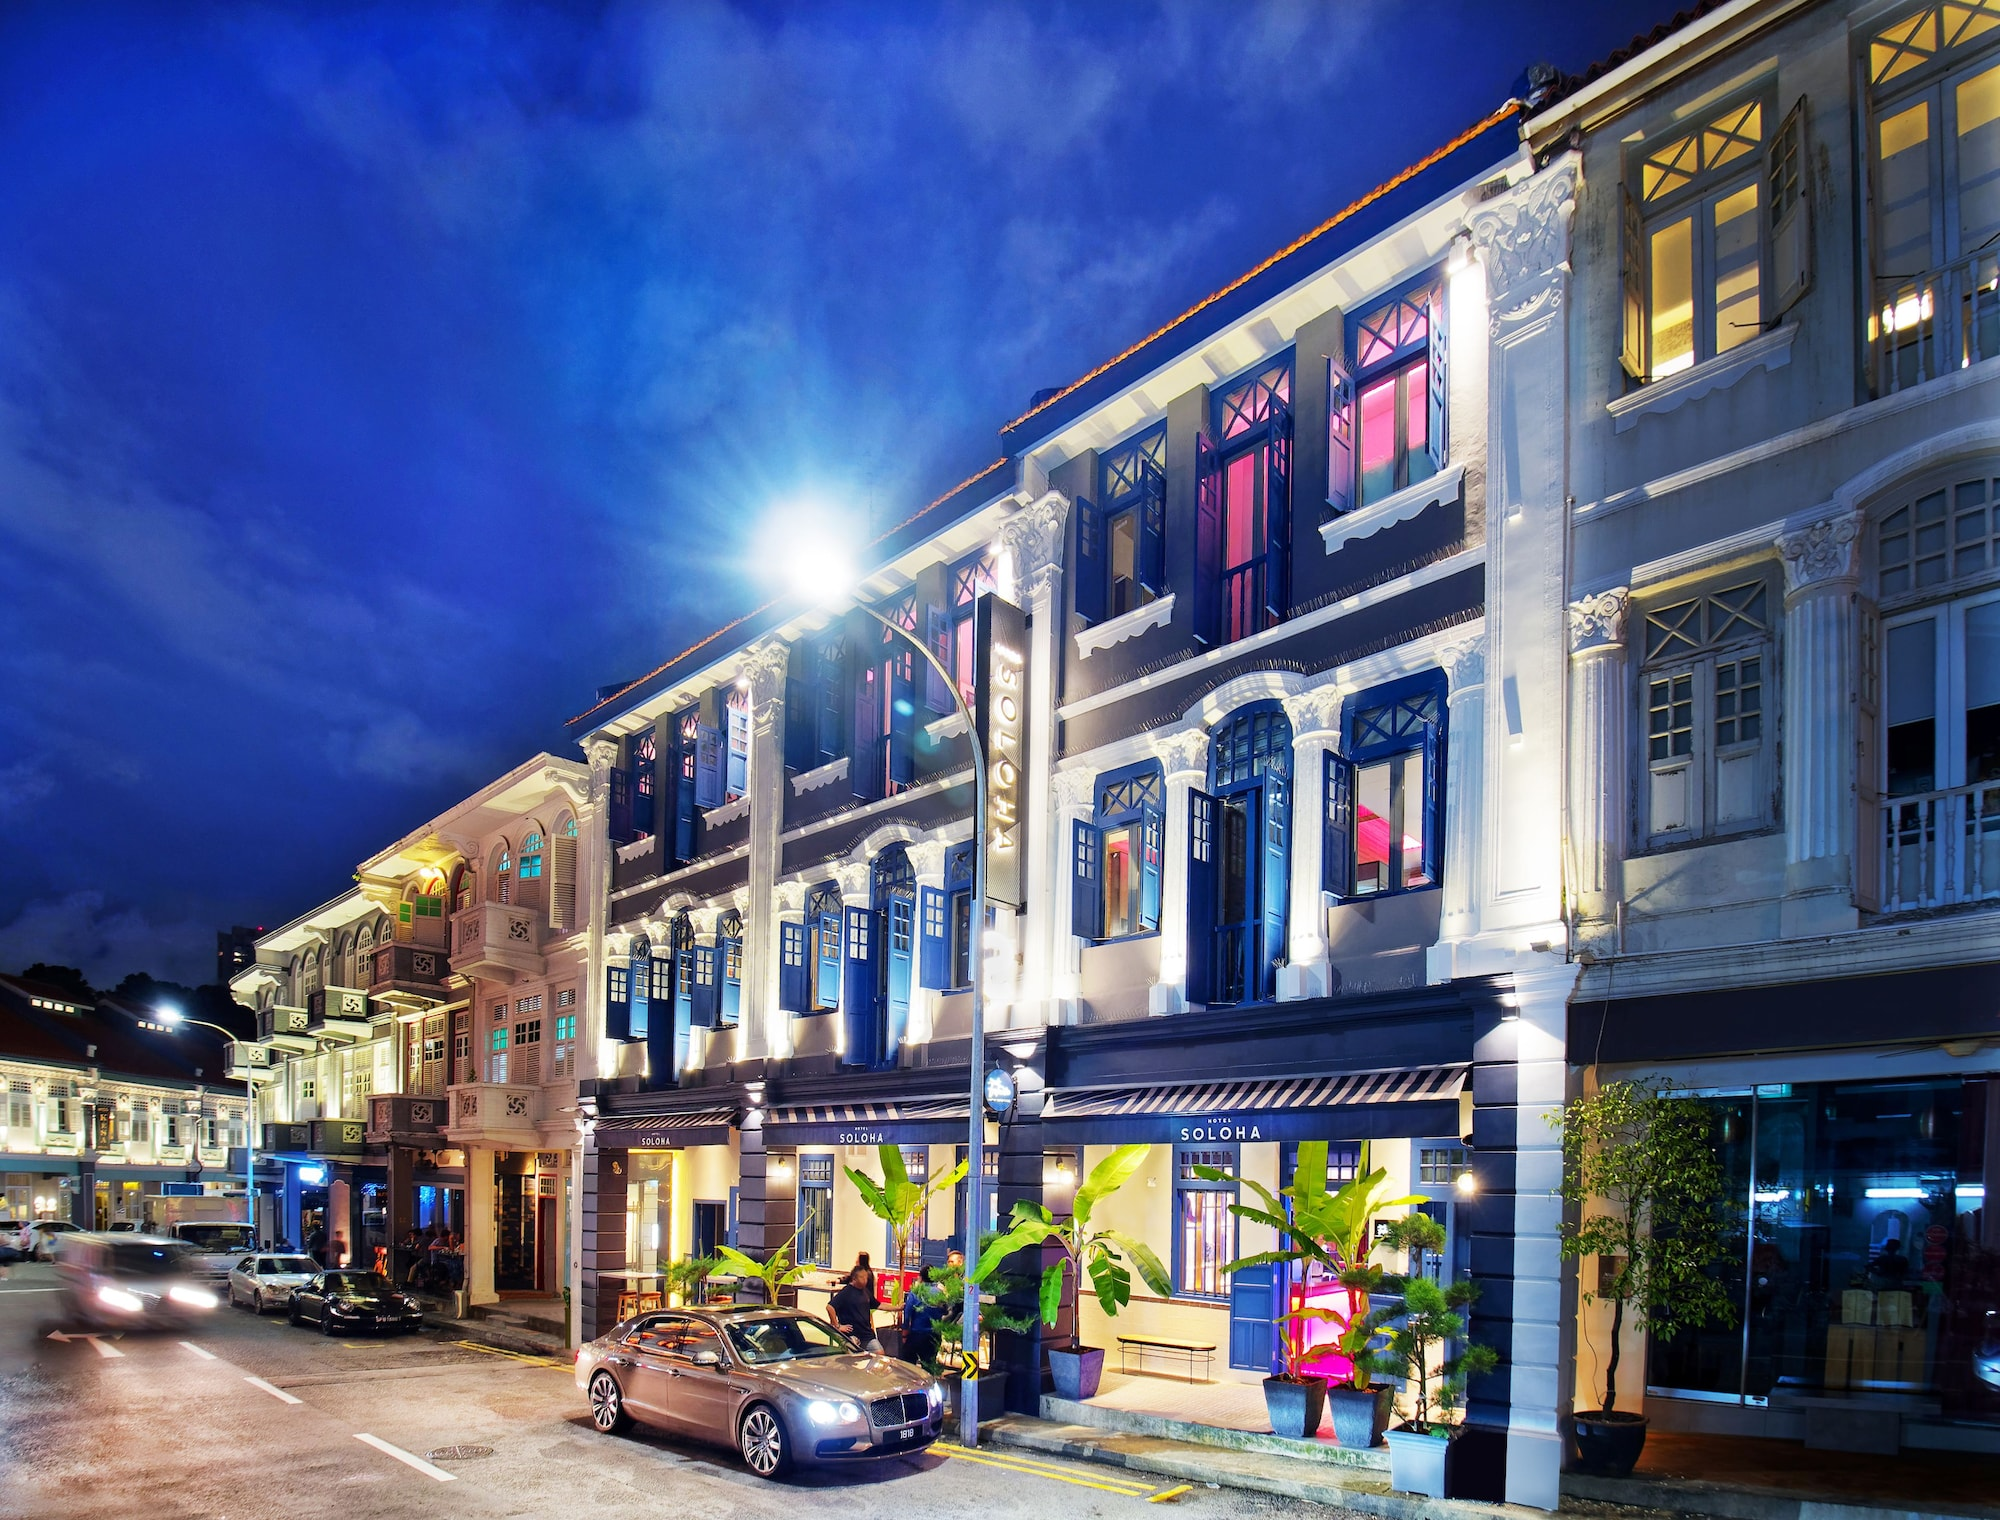 Hotel Soloha @ Chinatown, Outram